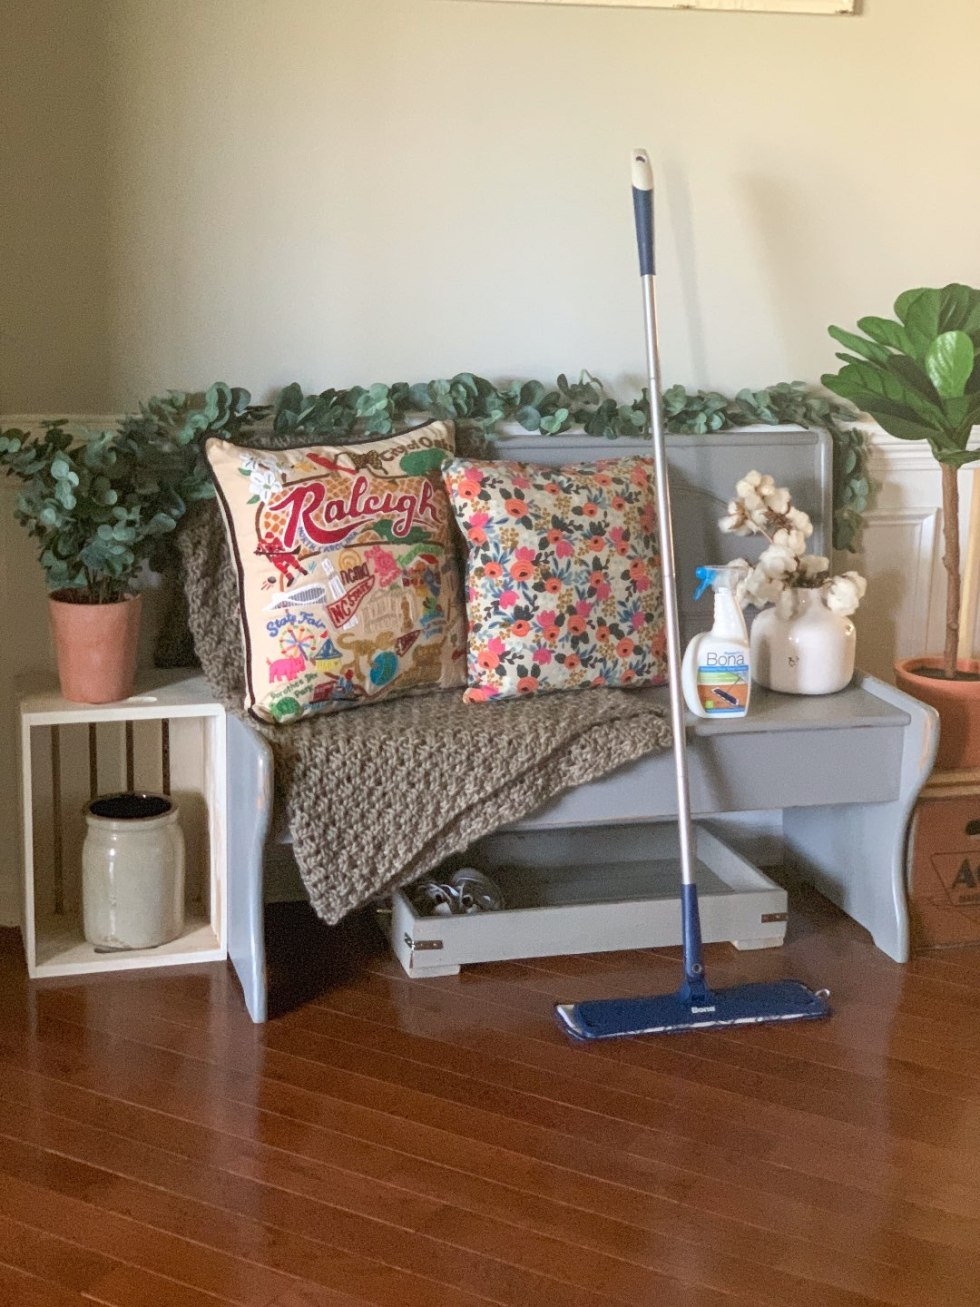 Keeping Our Floors Clean with Bona Essentials - I'm Fixin' To - @mbg0112 | Keeping Our Floors Clean with Bona Essentials by popular lifestyle blog, I'm Fixin' To: image of a bottle of Bona Essentials Hardwood Floor Deep Cleaner and a Bona Essentials Mop next to a grey wooden bench.